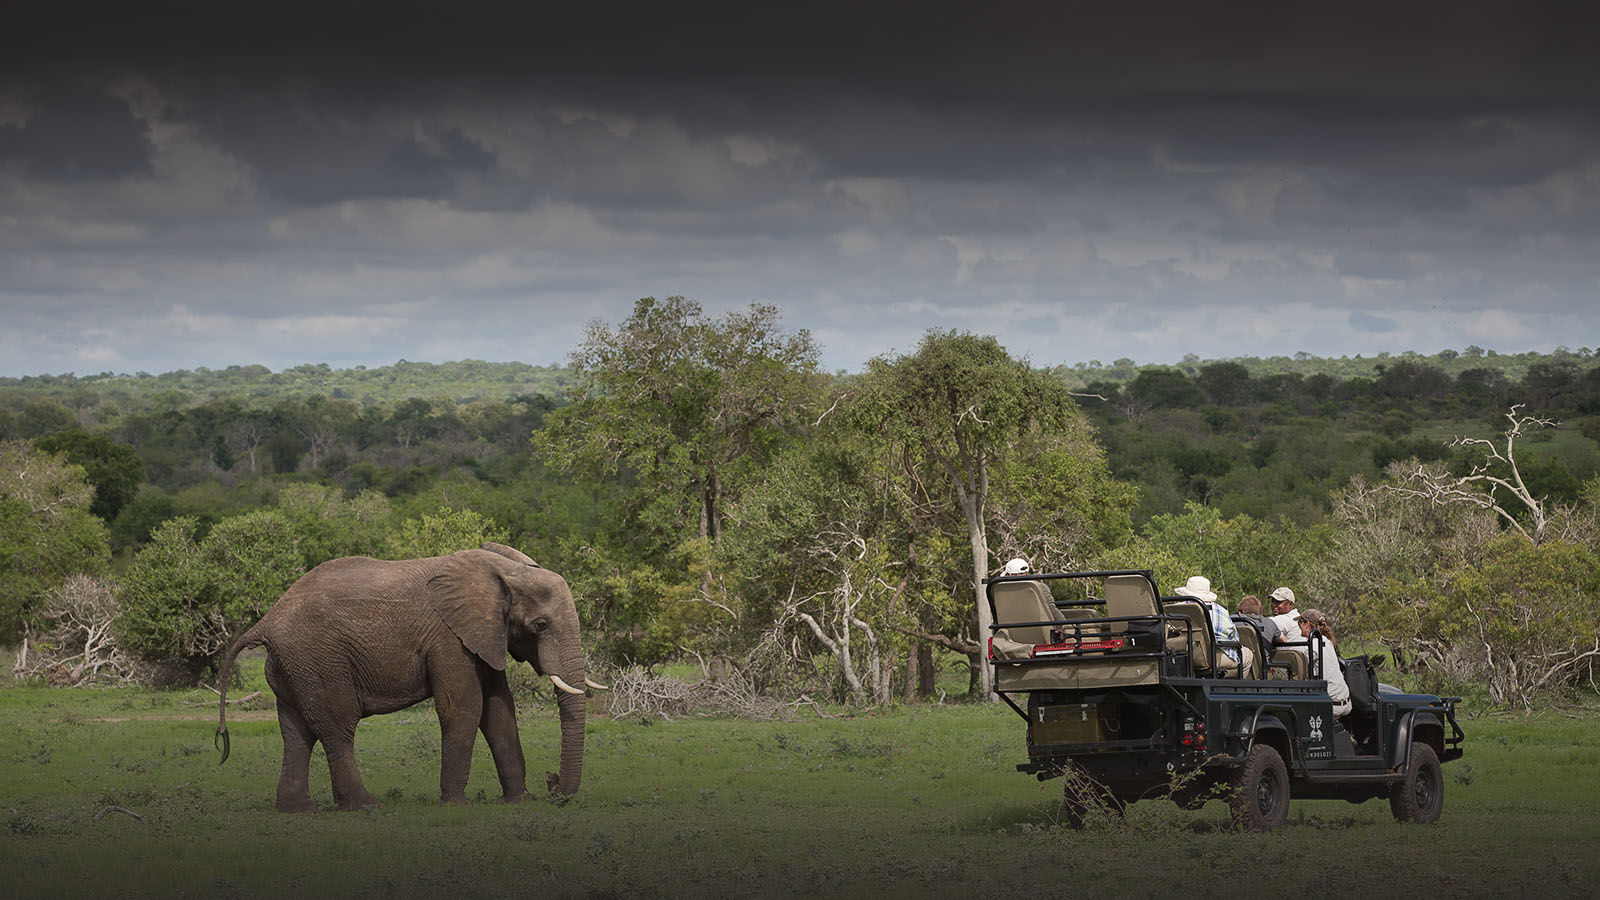 londolozi-greater-kruger-lodges-zambia-in-style-south-africa-londolozi-reserve-luxurious-wildlife-haven-elephant-sighting-game-drive